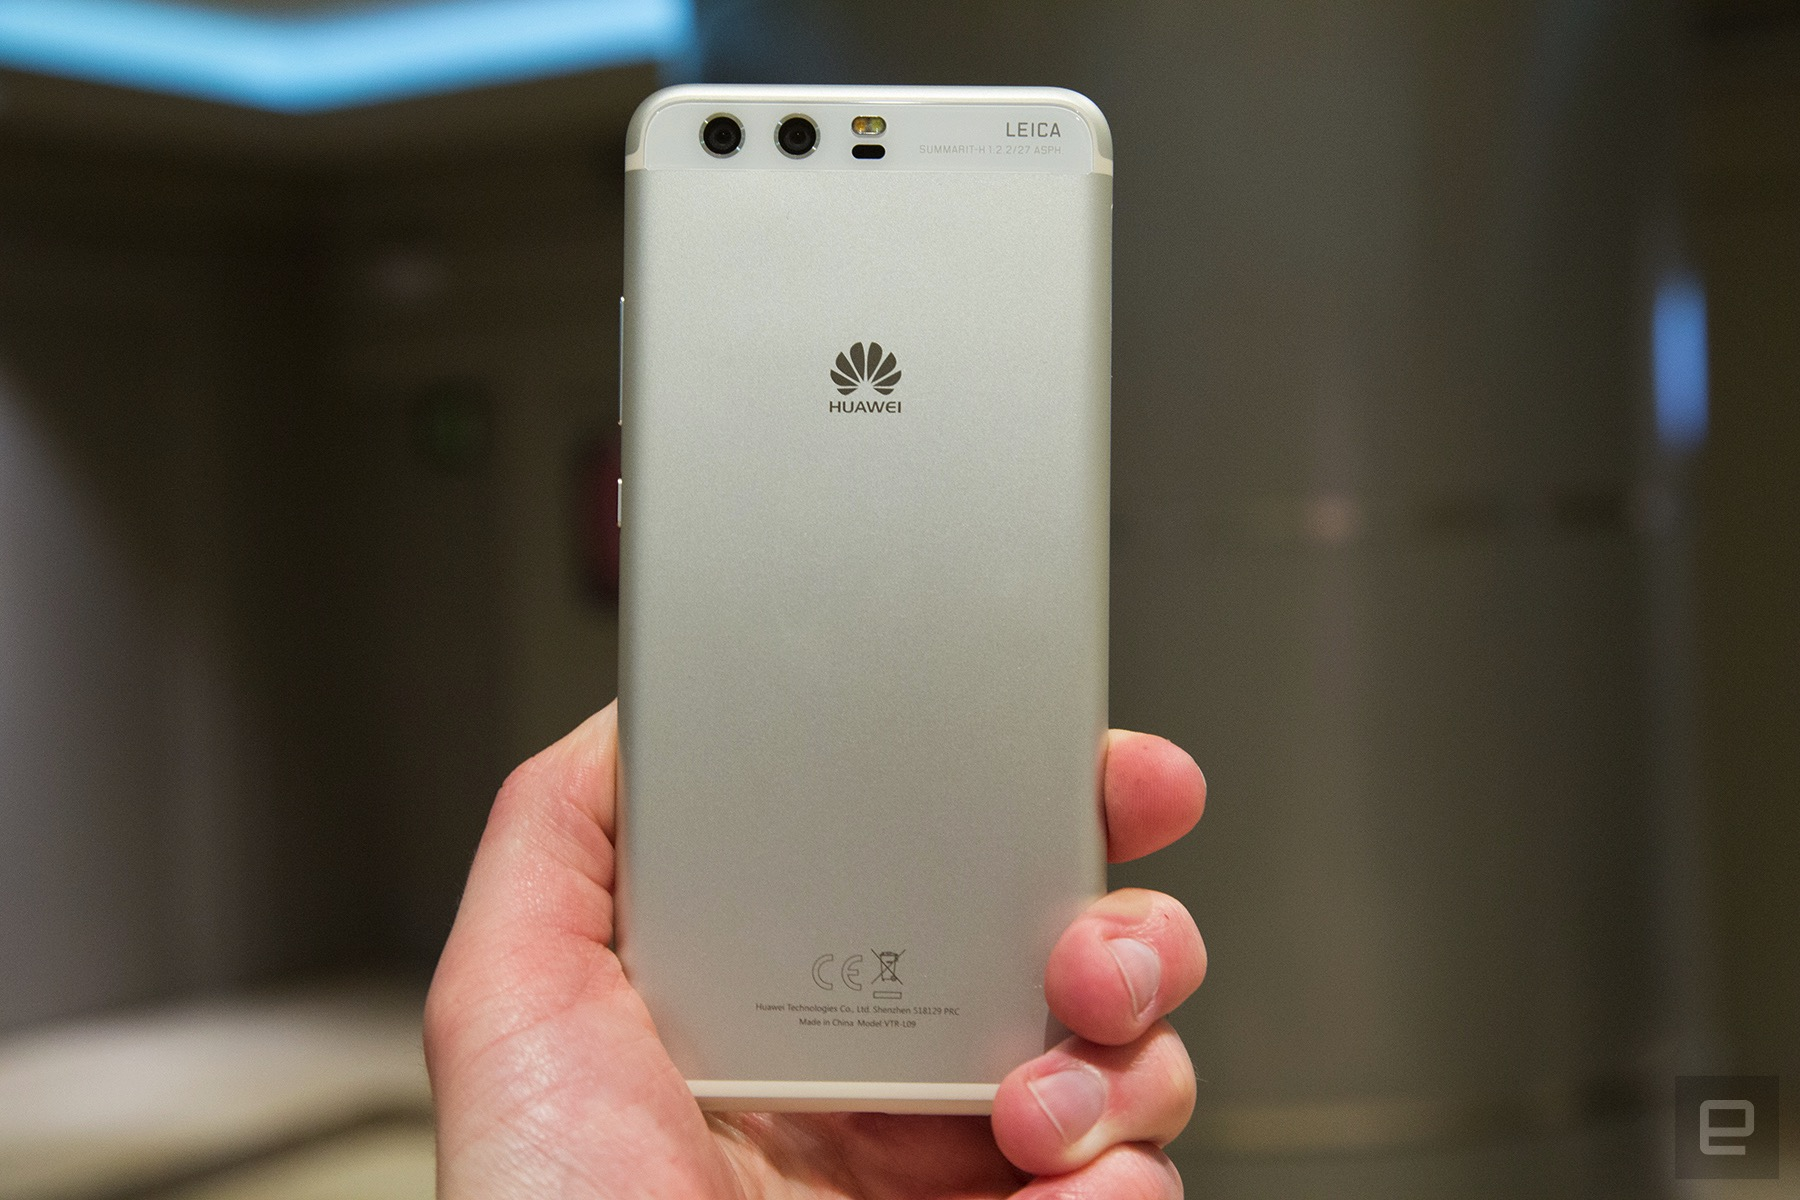 Shooting photos with the Leica-branded Huawei P10